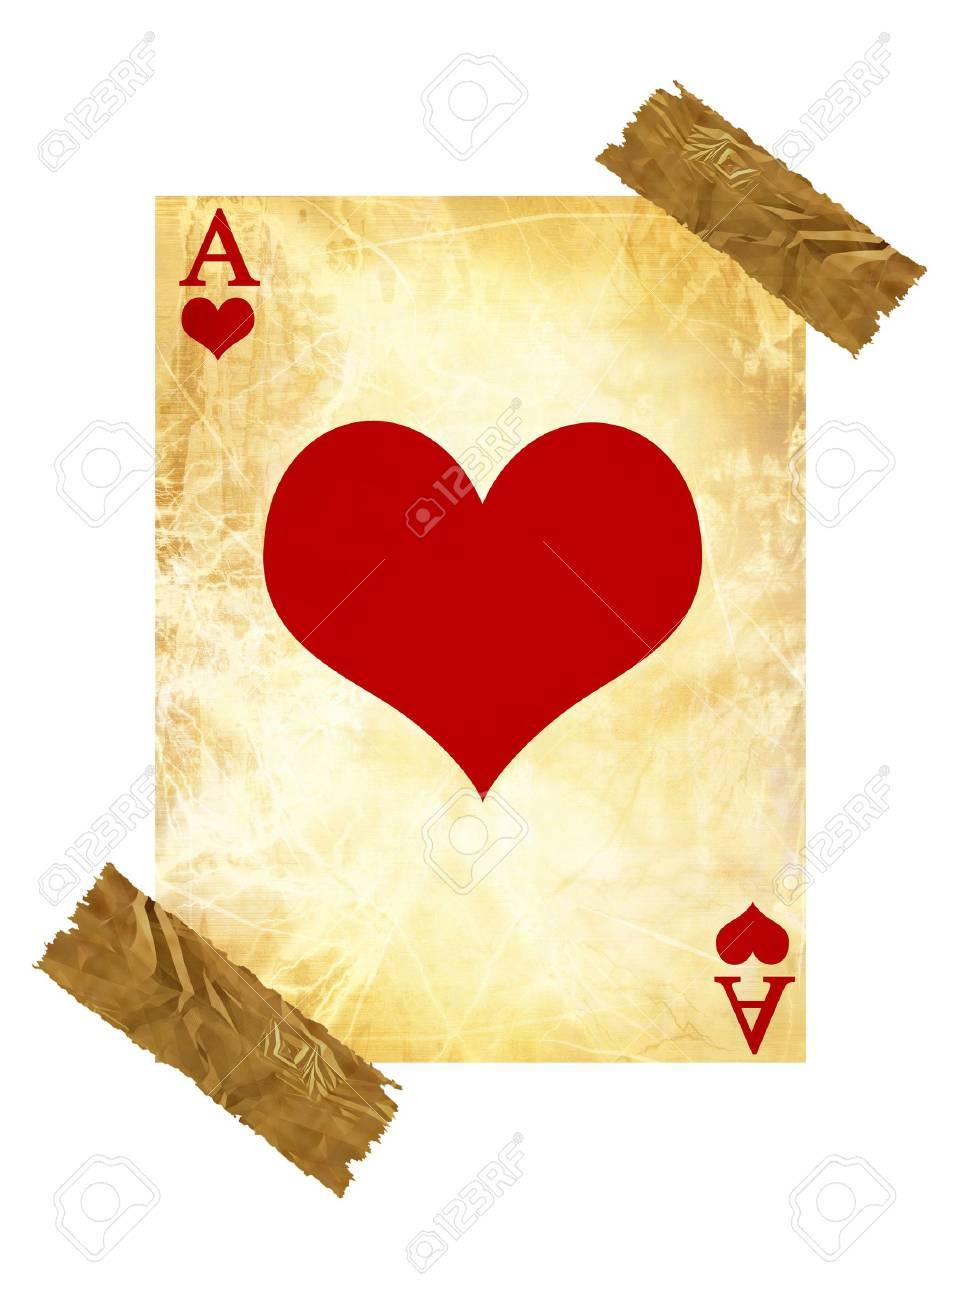 old playing card on a white background Stock Photo - 3688809